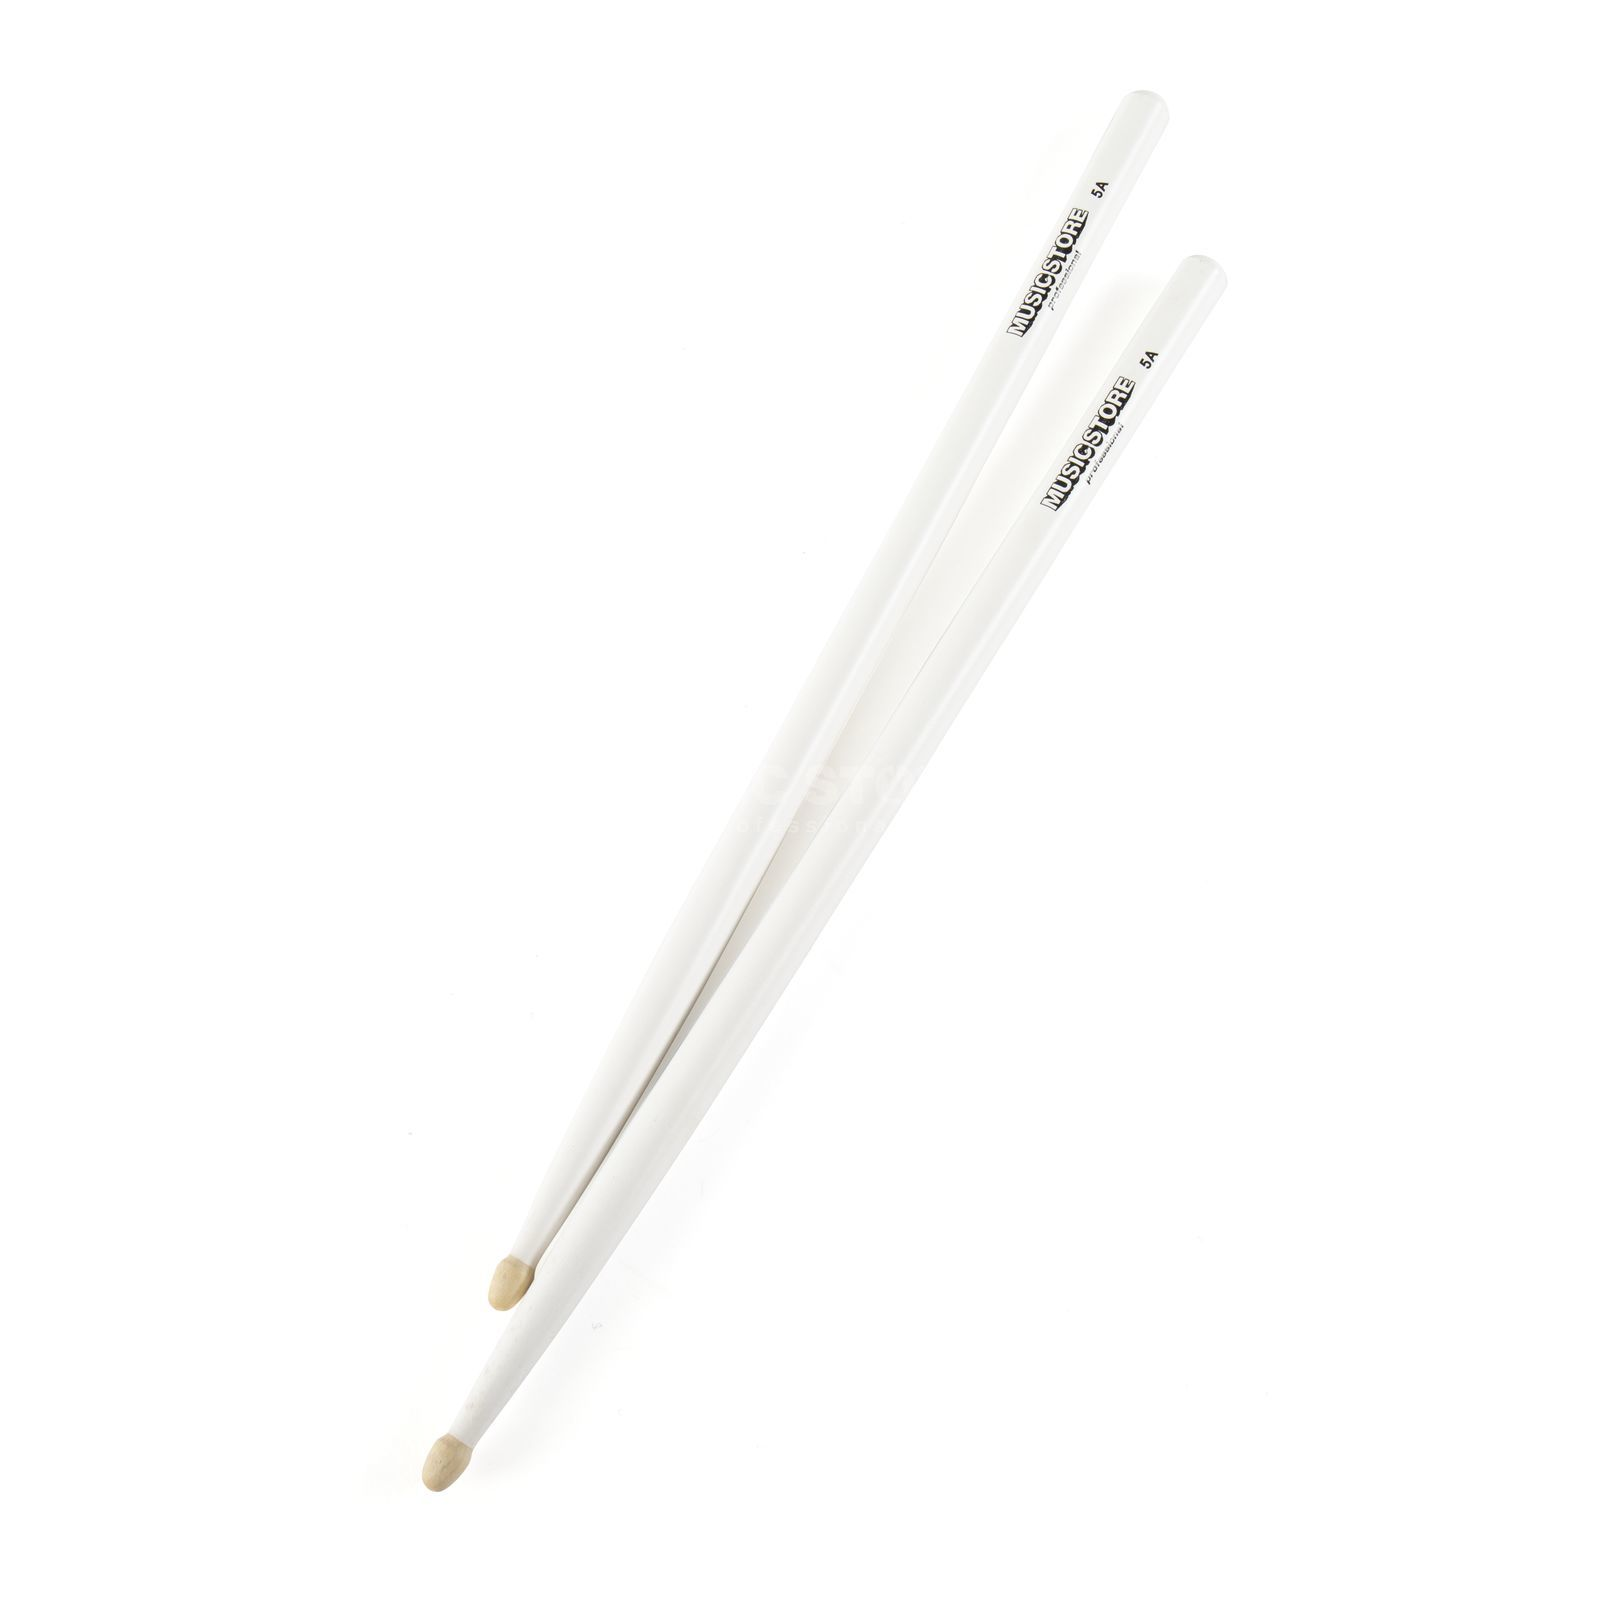 MUSIC STORE 5A Sticks, white, hornbeam Product Image